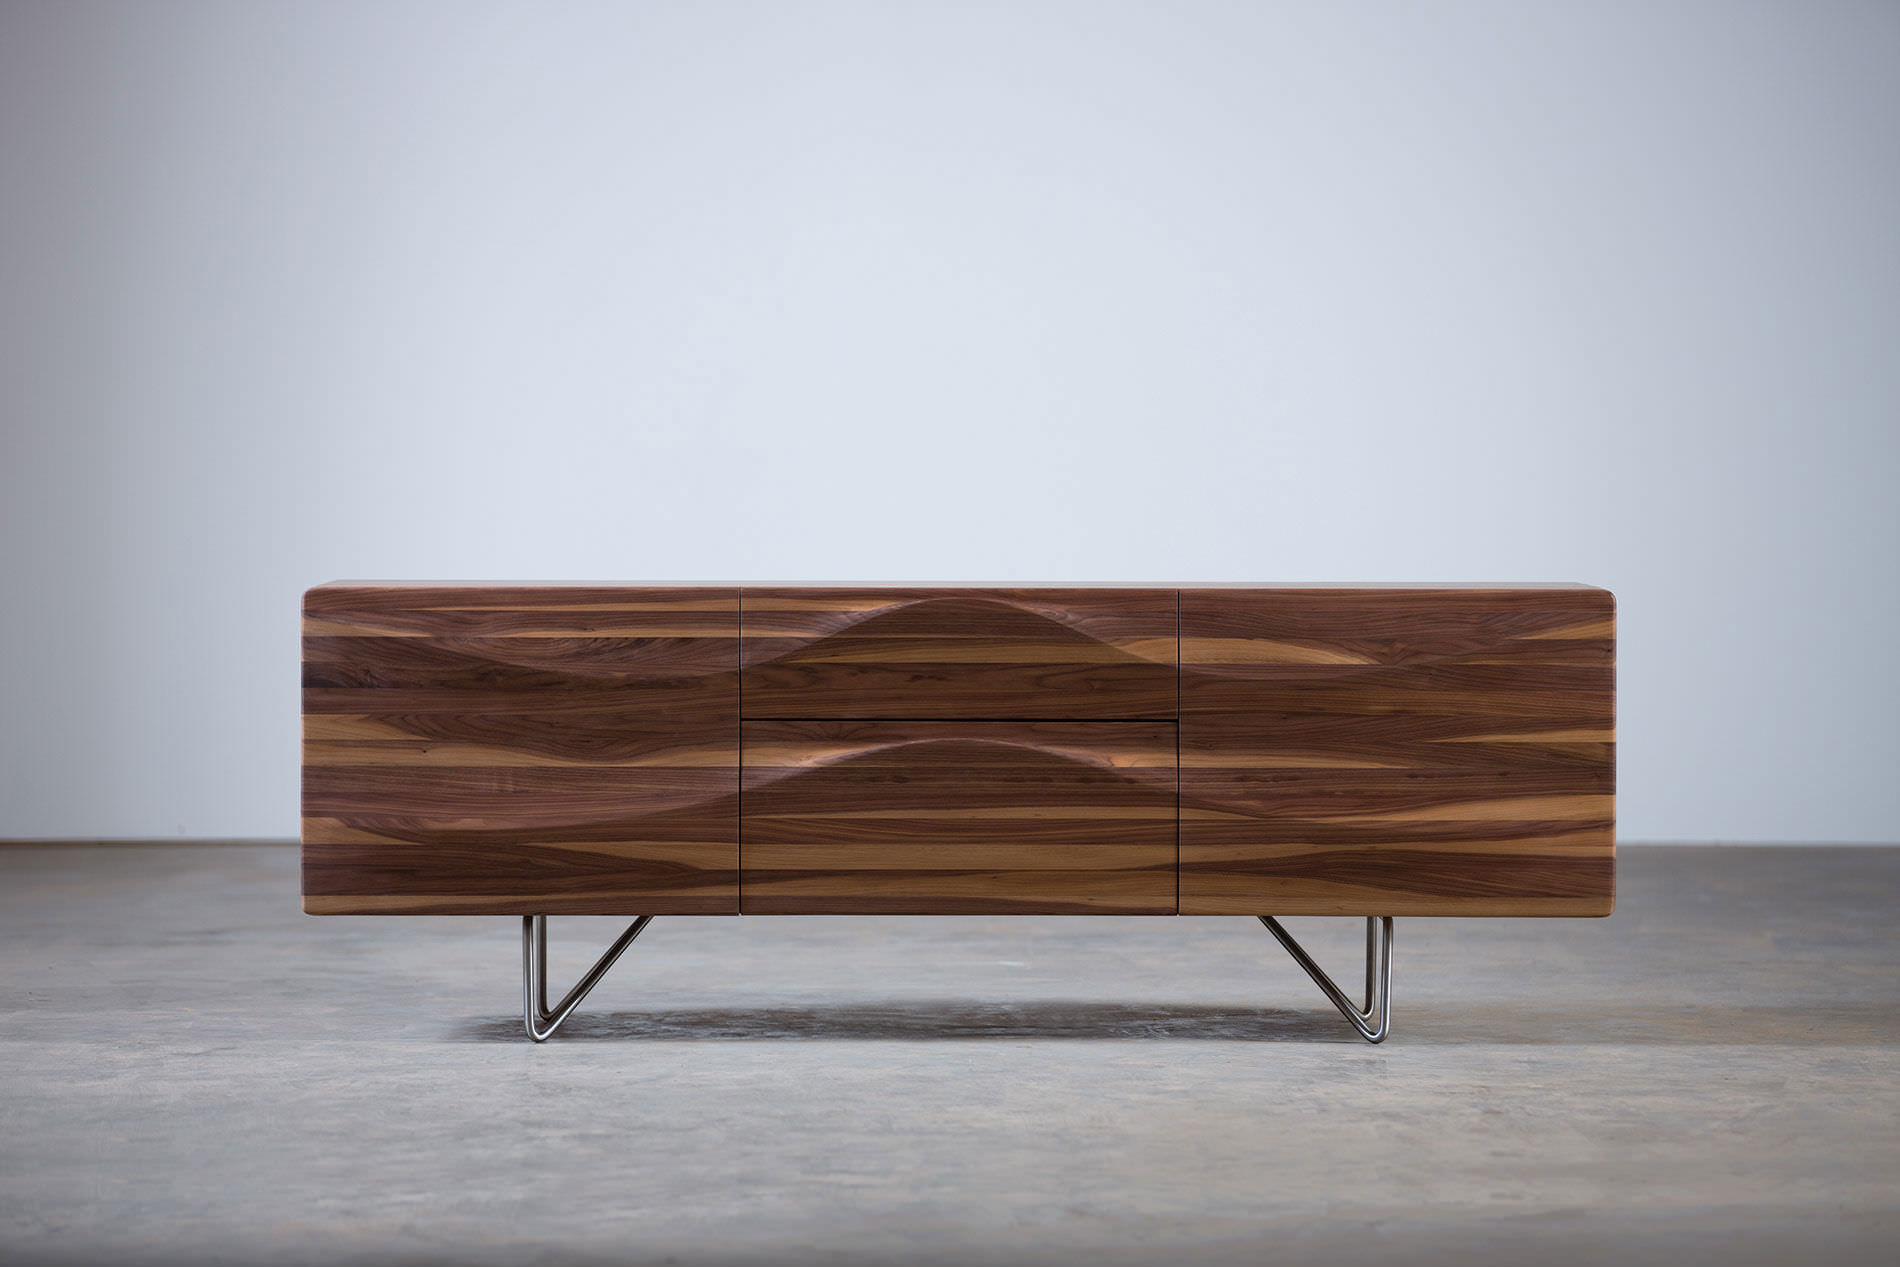 Contemporary sideboard   oak   walnut   cherrywood LASTA by Ado Avdagi  Artisan  Solid Wood Furniture. Contemporary sideboard   oak   walnut   cherrywood   LASTA by Ado